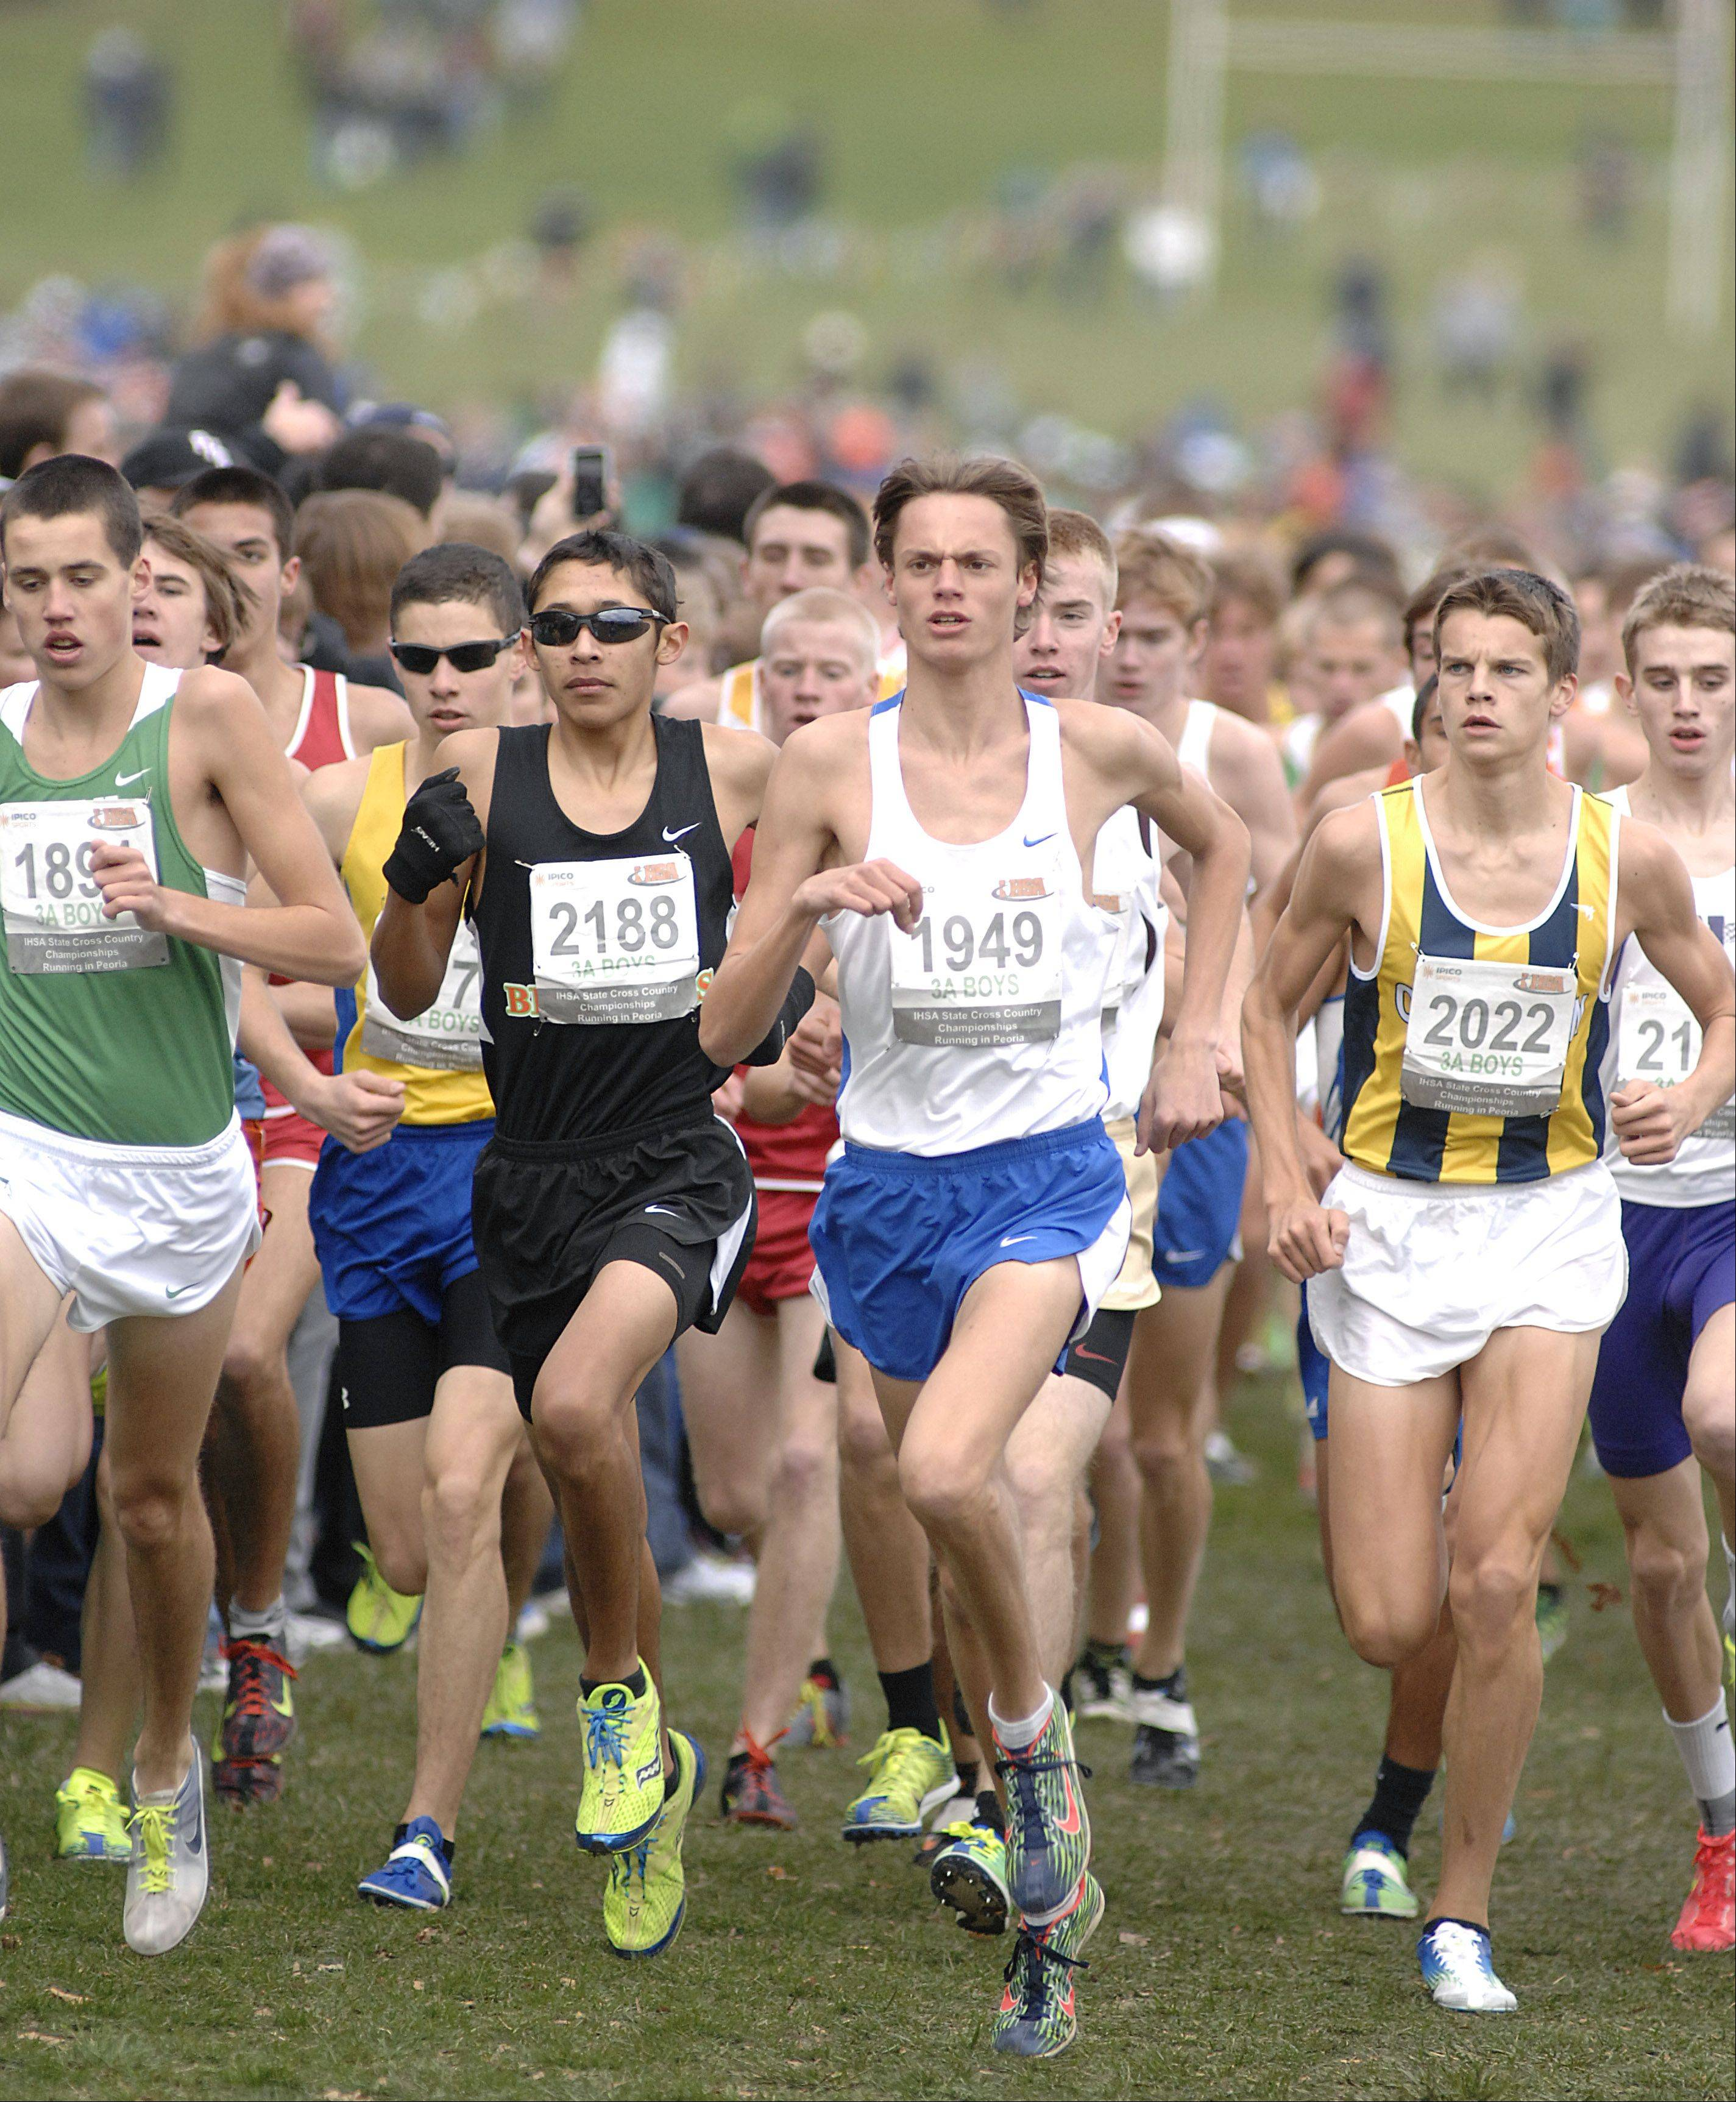 Lake Zurich's Alex Milner (1949) leads the pack in the state cross country 3A final in Peoria on Saturday, November 3.